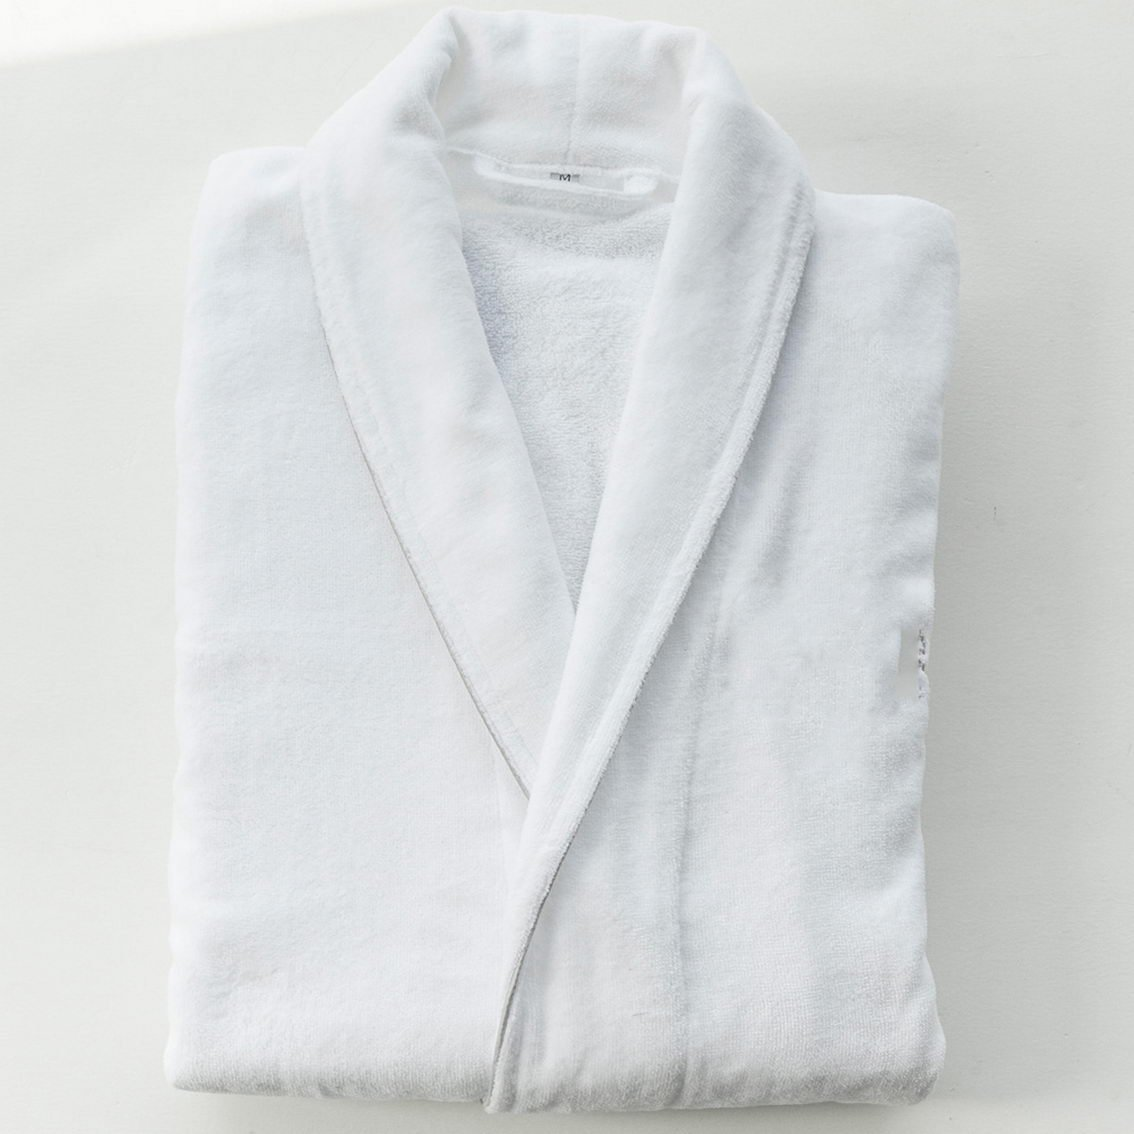 e87991d83d Get Quotations · jii2030shann Hotel bathrobes male lengthened thickening  couple toweling bathrobe winter absorbent cotton bathrobe toweling bathrobe  ...